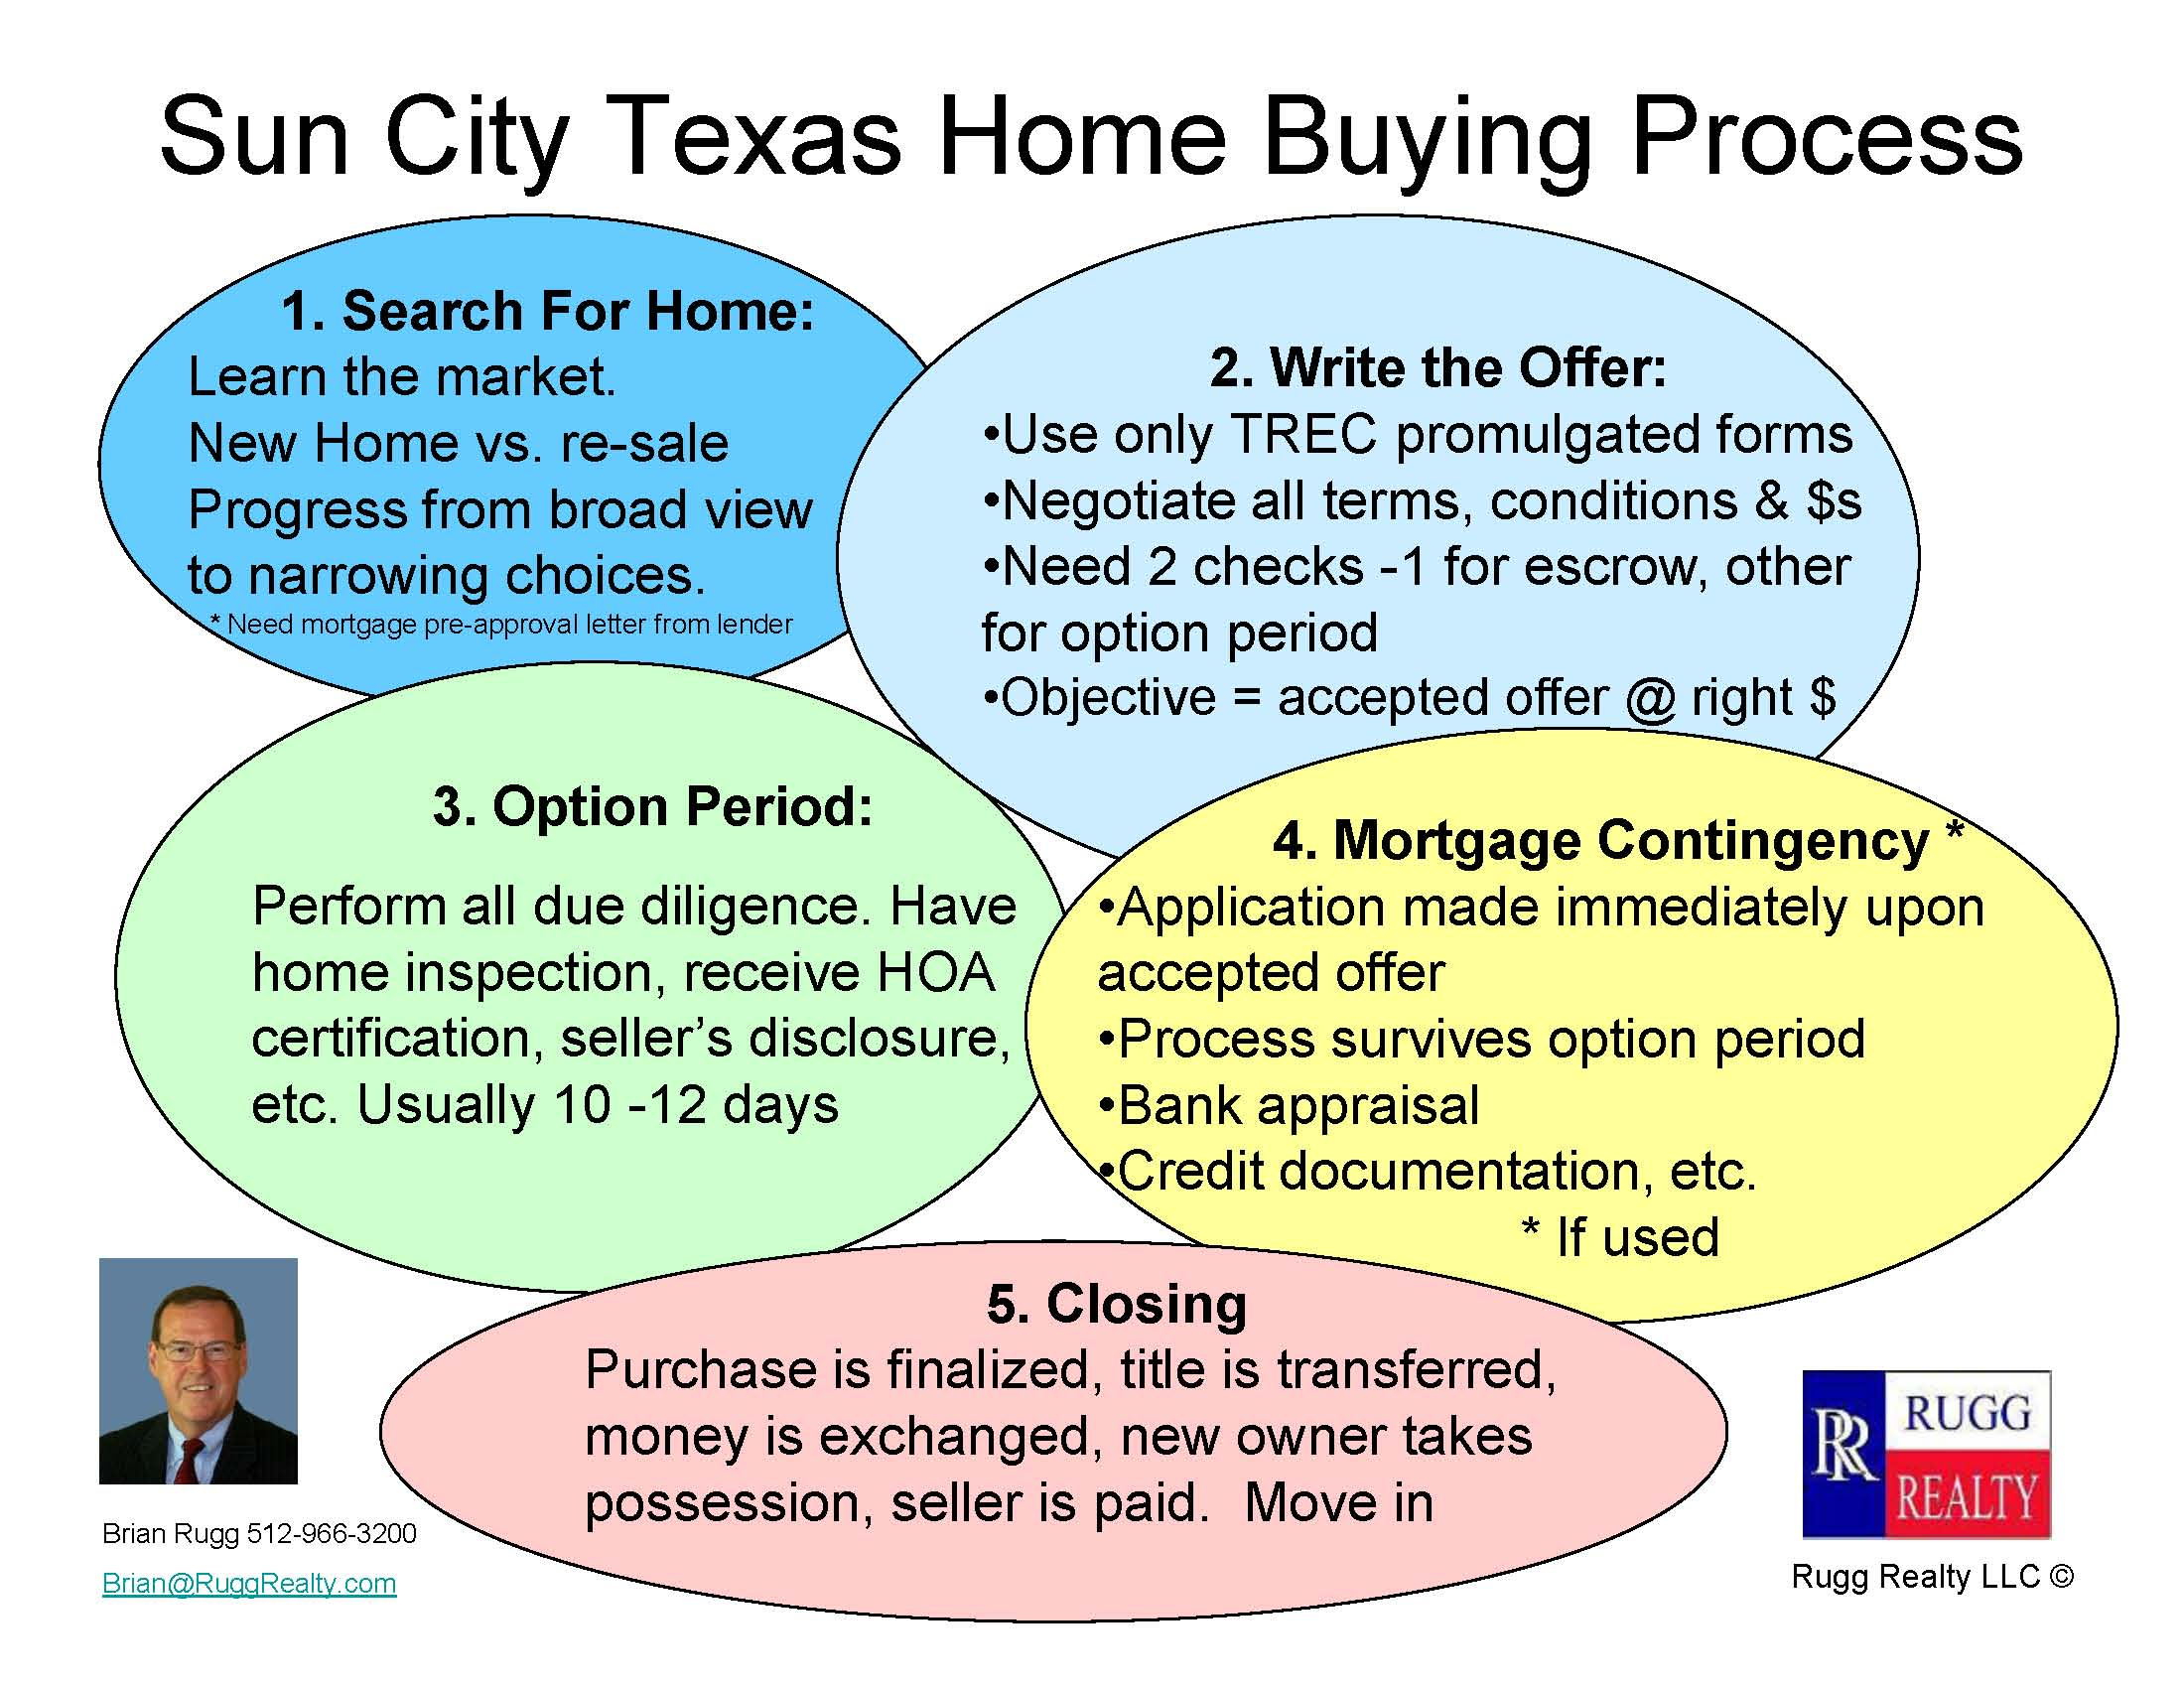 Sun City Texas Home Buying Process